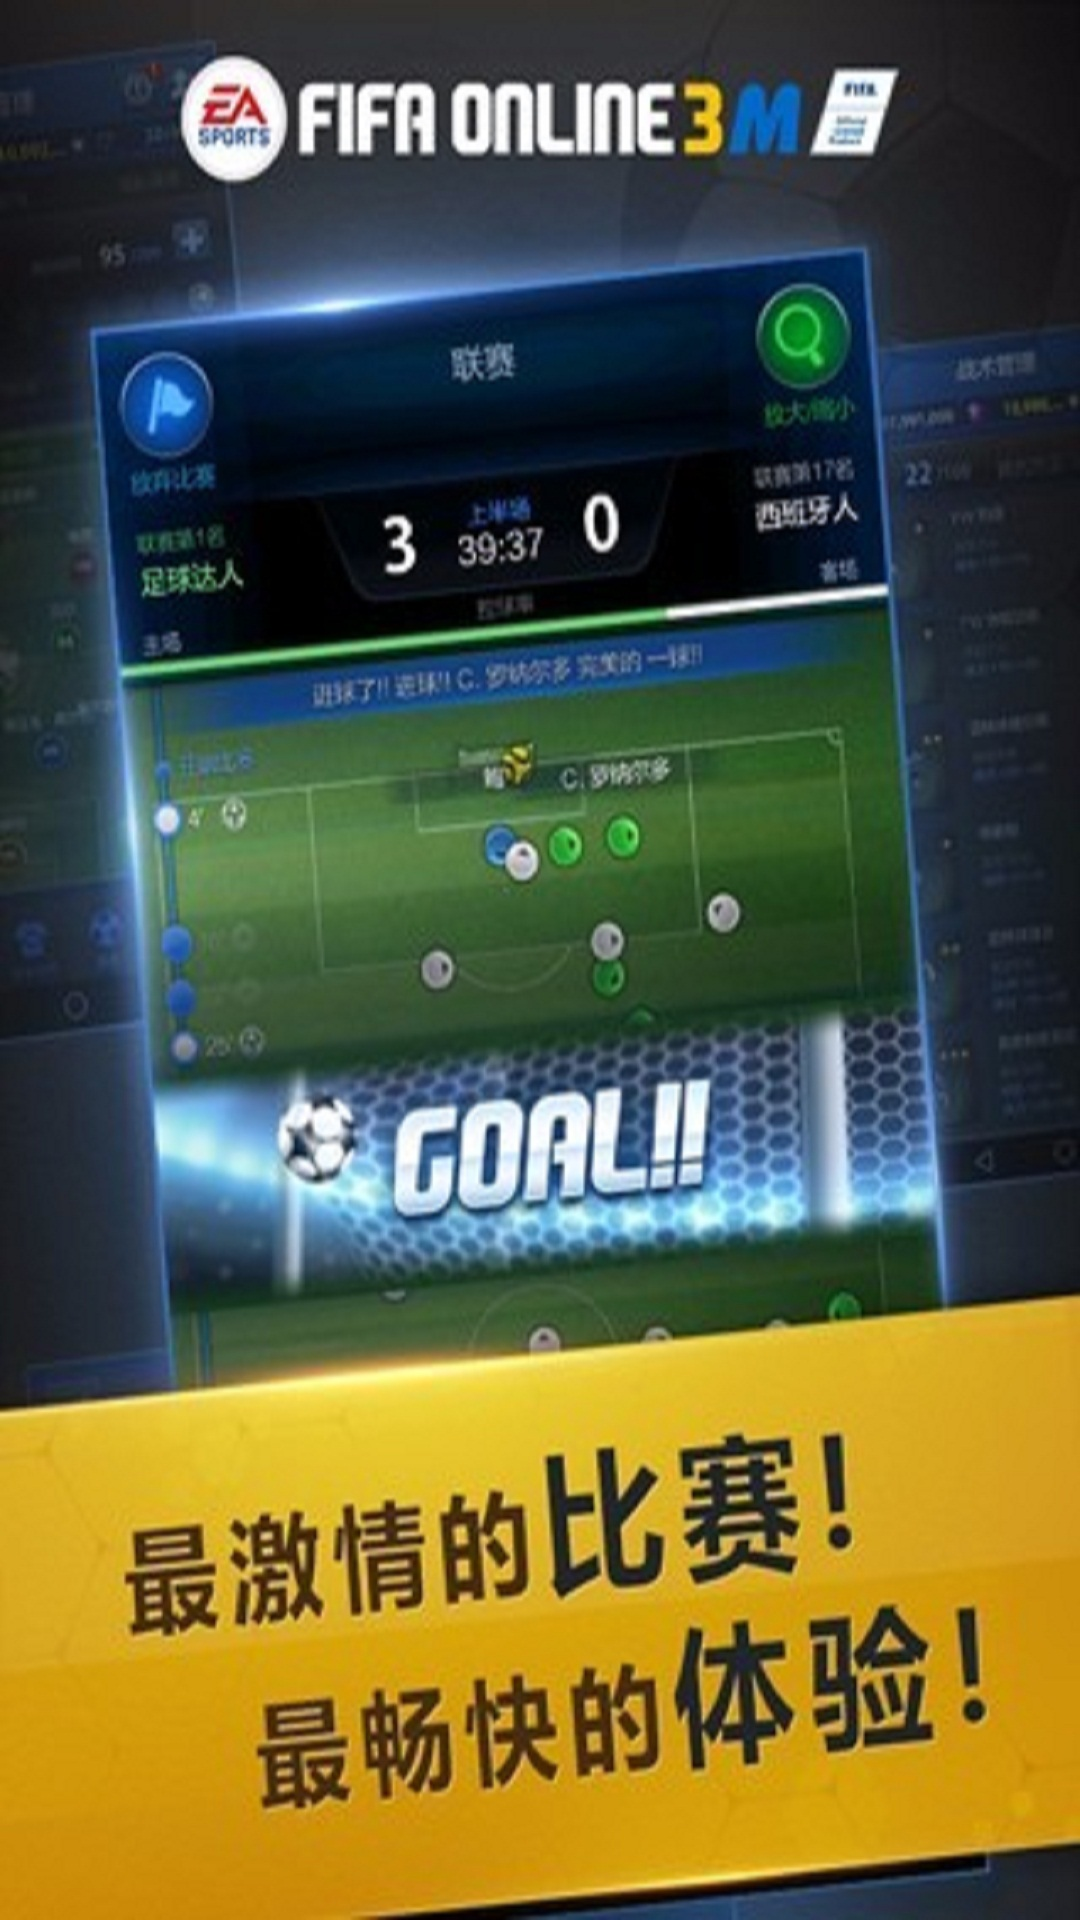 FIFA ONLINE 3 M by EA SPORTS™游戏截图